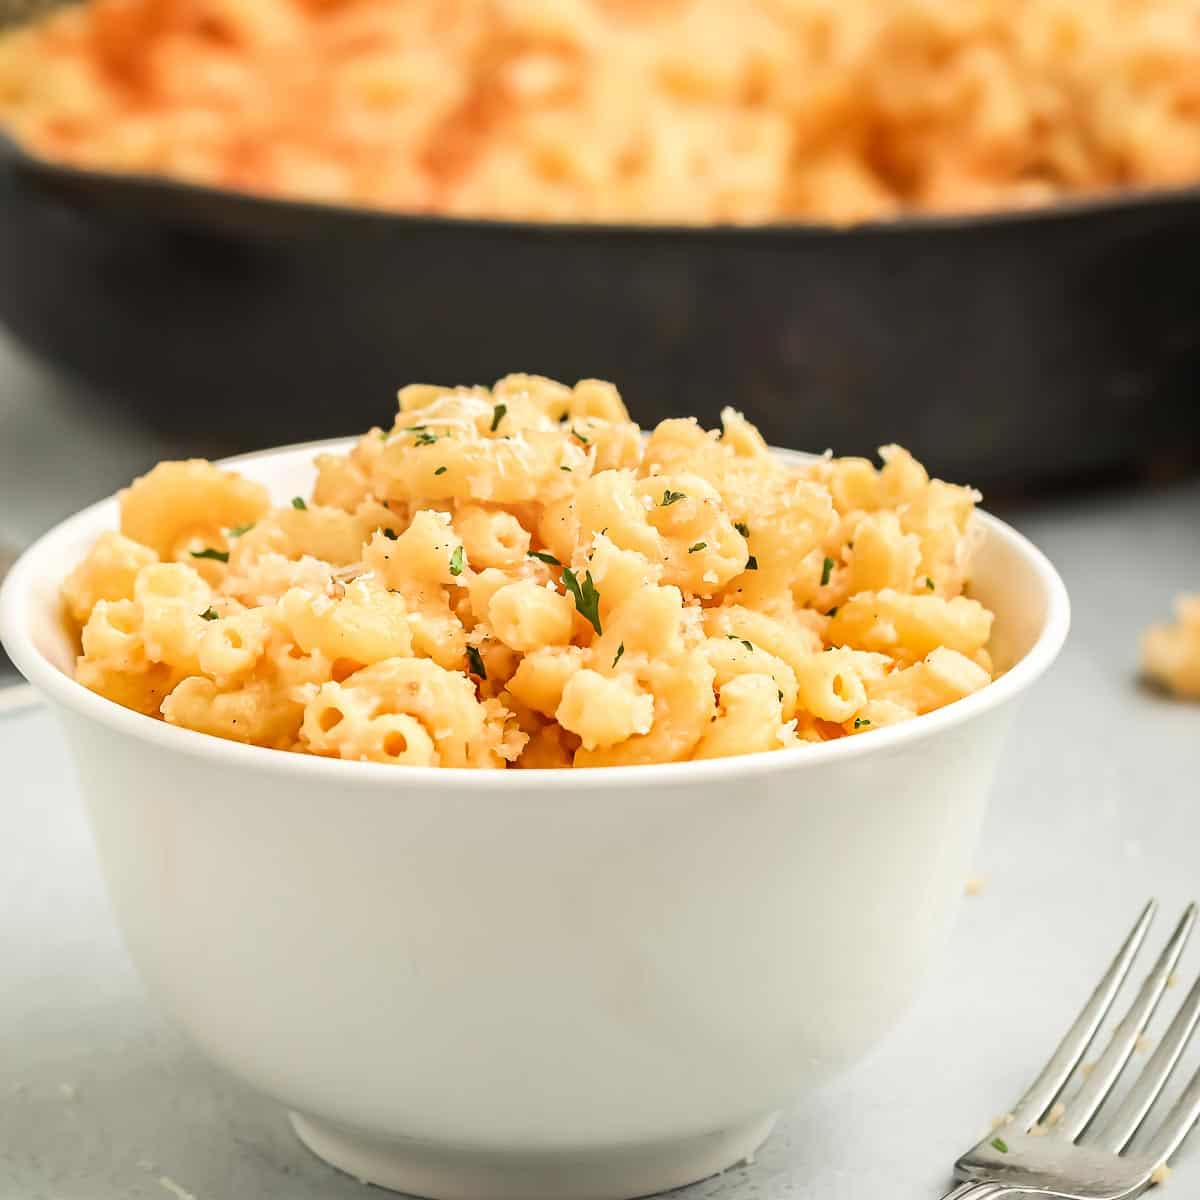 Side shot of Mac and cheese in a white bowl with a fork on the side and a skillet with more Mac and cheese in the background.